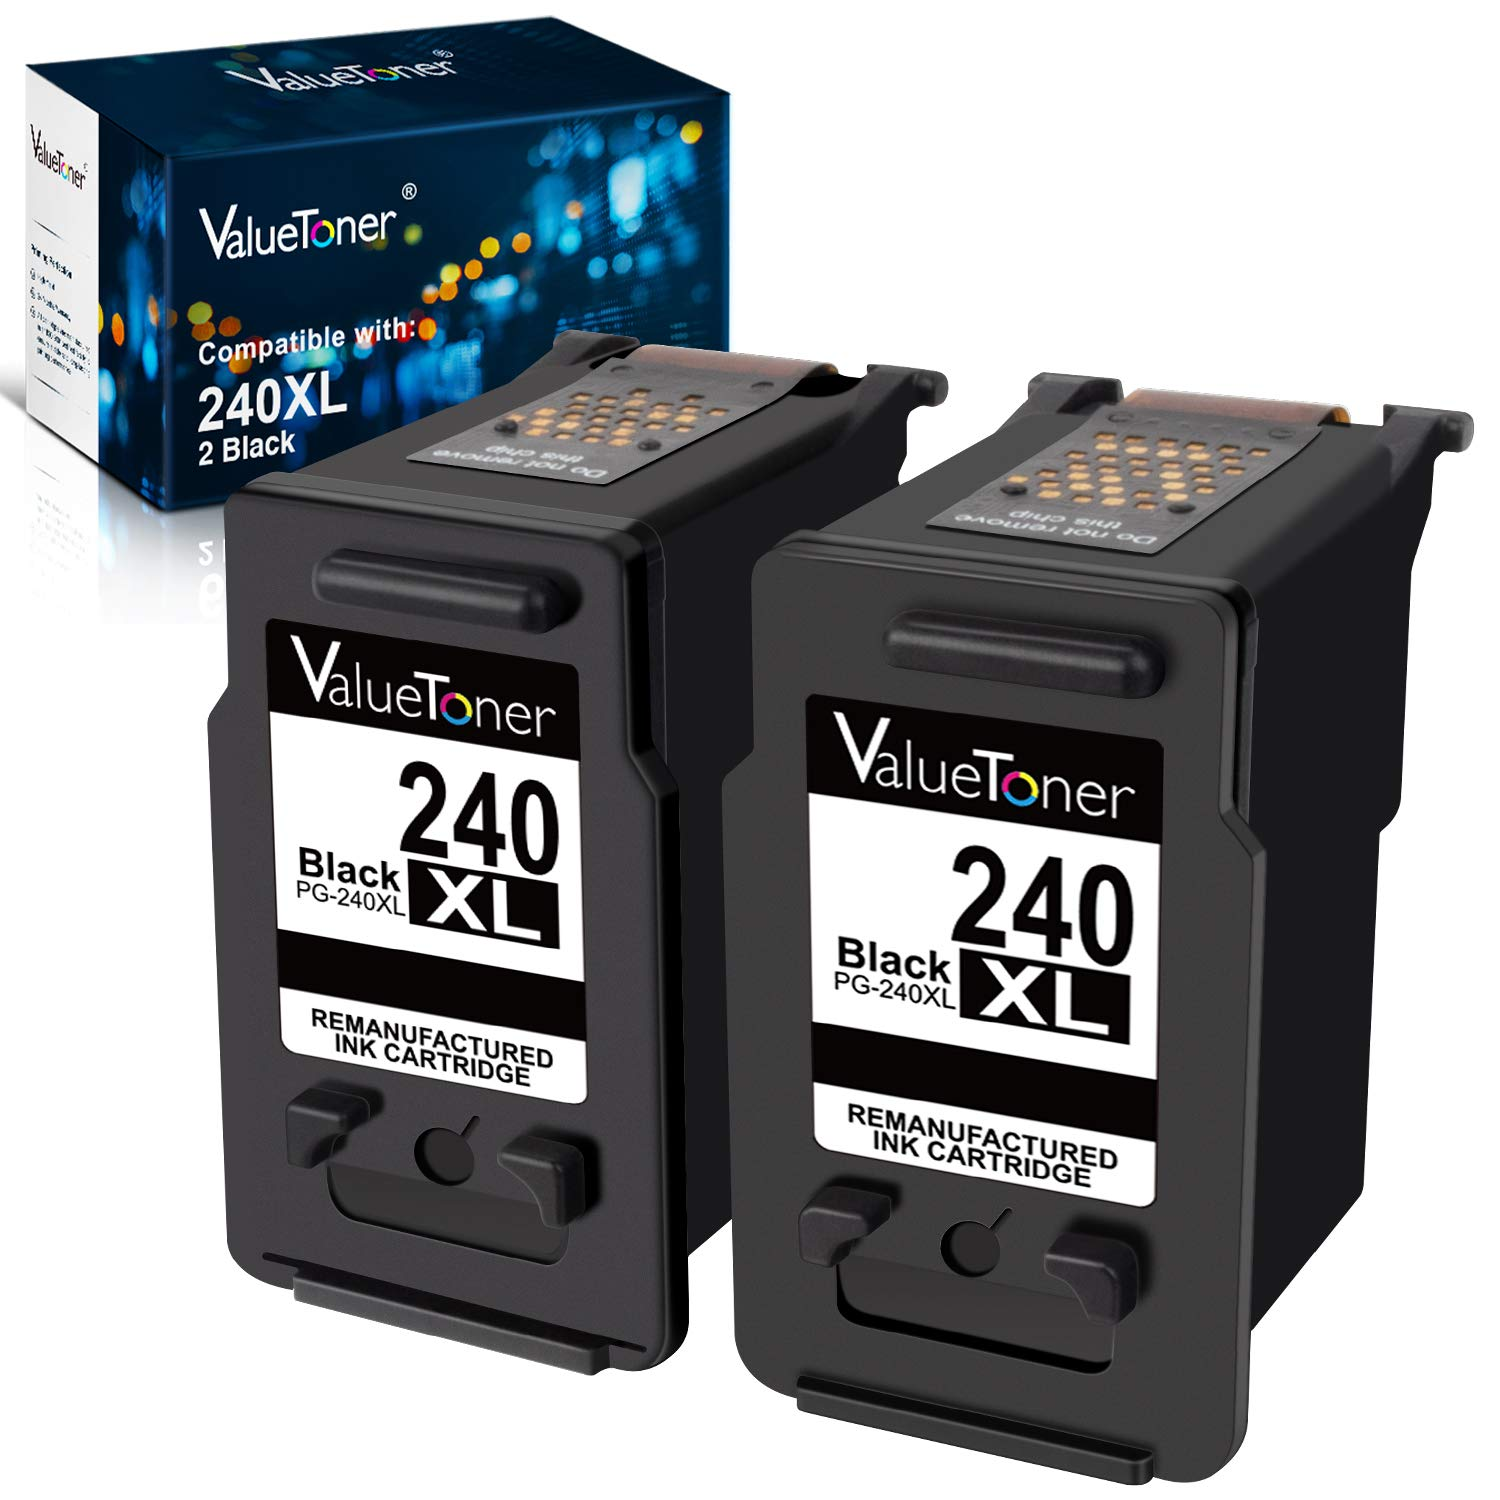 Valuetoner Remanufactured Ink Cartridge Replacement for Canon PG-240XL 240 XL for TS5120 Pixma MG3620 MX532 MG2120 MG2220 MG3120 MG3122 MG3220 MG3222 MG3520 MX432 MX452 MX512 High Yield (2 Black)